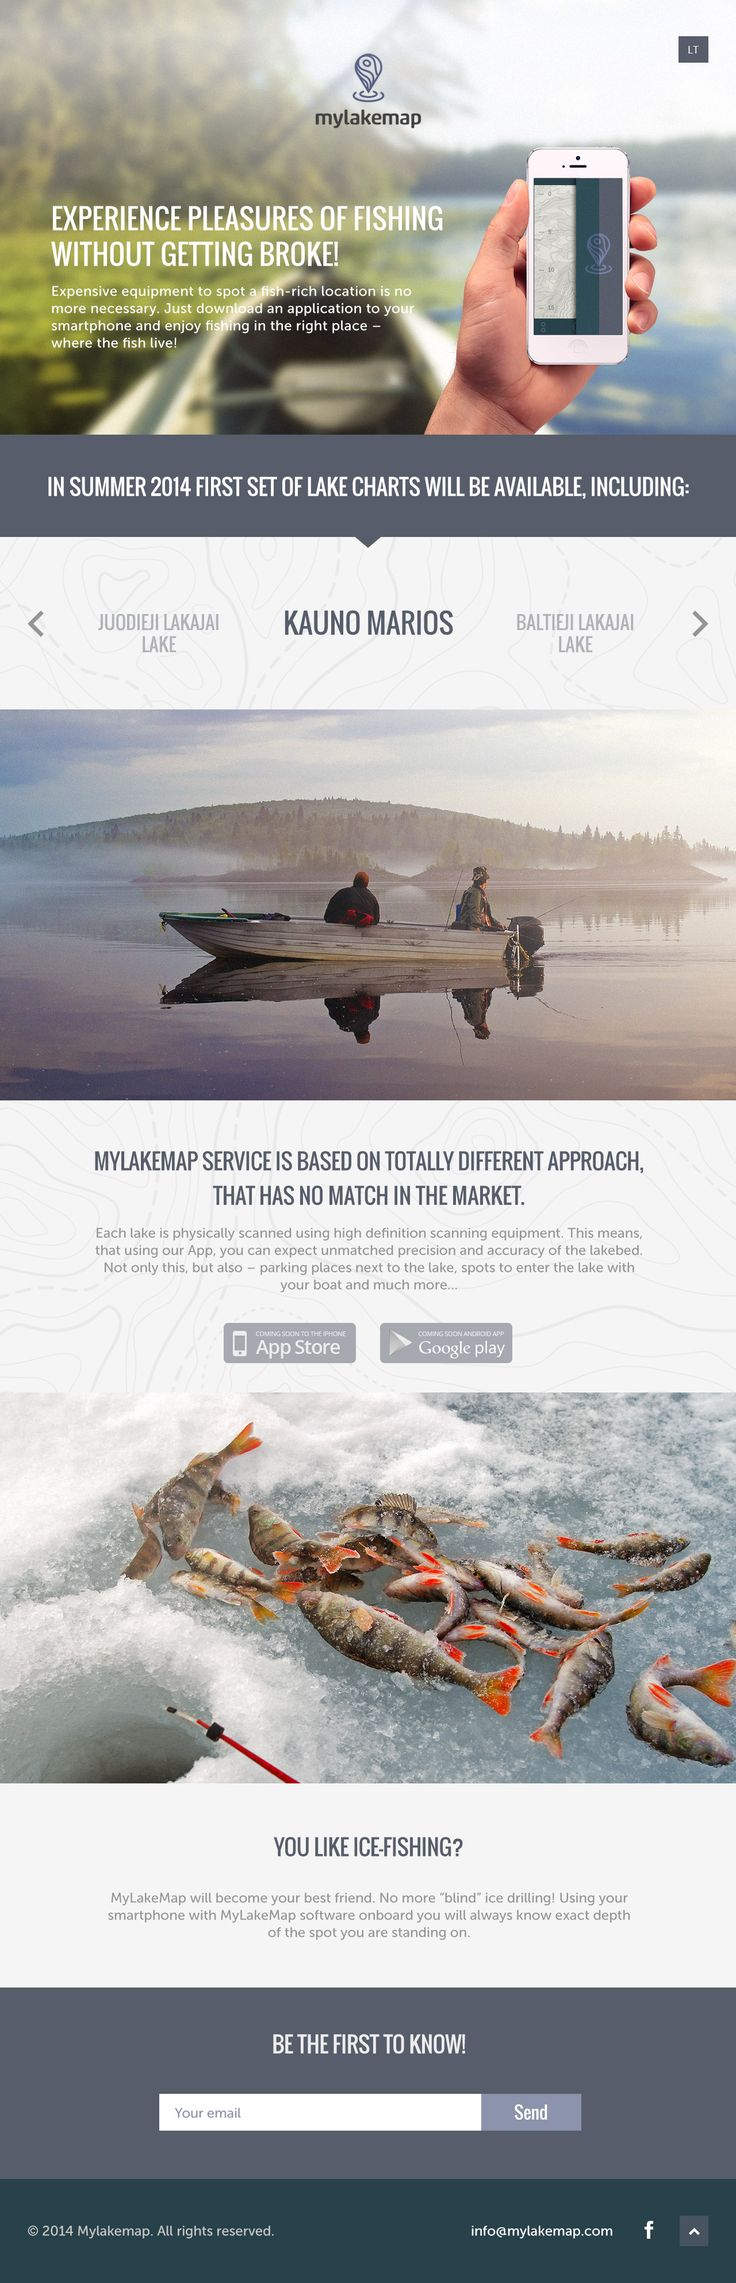 Launching soon page for 'Mylakemap' - an upcoming app to aid your fishing experience. The imagery is great and fills a big screen well but feel a lot of love was lost towards the footer when comparing to the header. Nice touch with the contours behind the lake names.